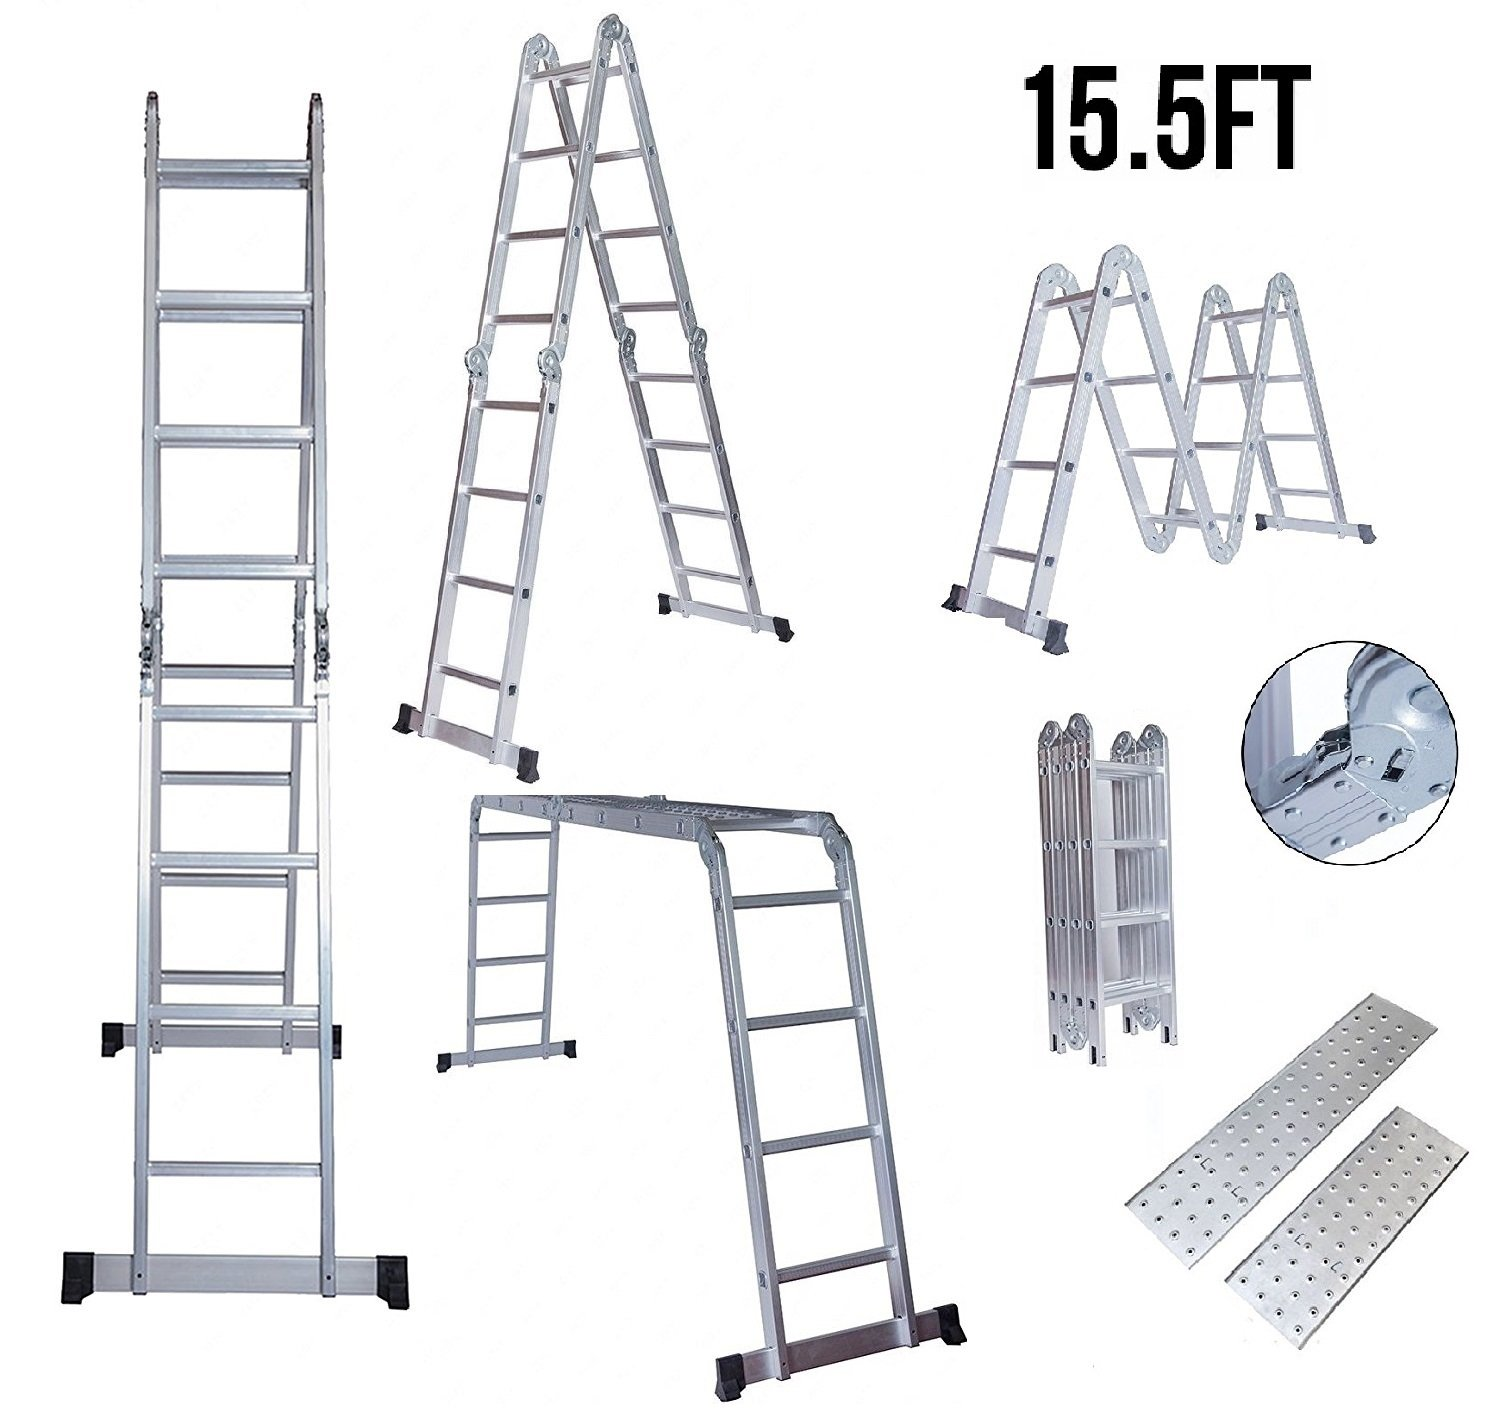 Get Quotations · Idealchoiceproduct 15.5u0027 Heavy Duty Gaint Aluminum Multi  Purpose Folding Ladder Scaffold Ladders With 2 Platform